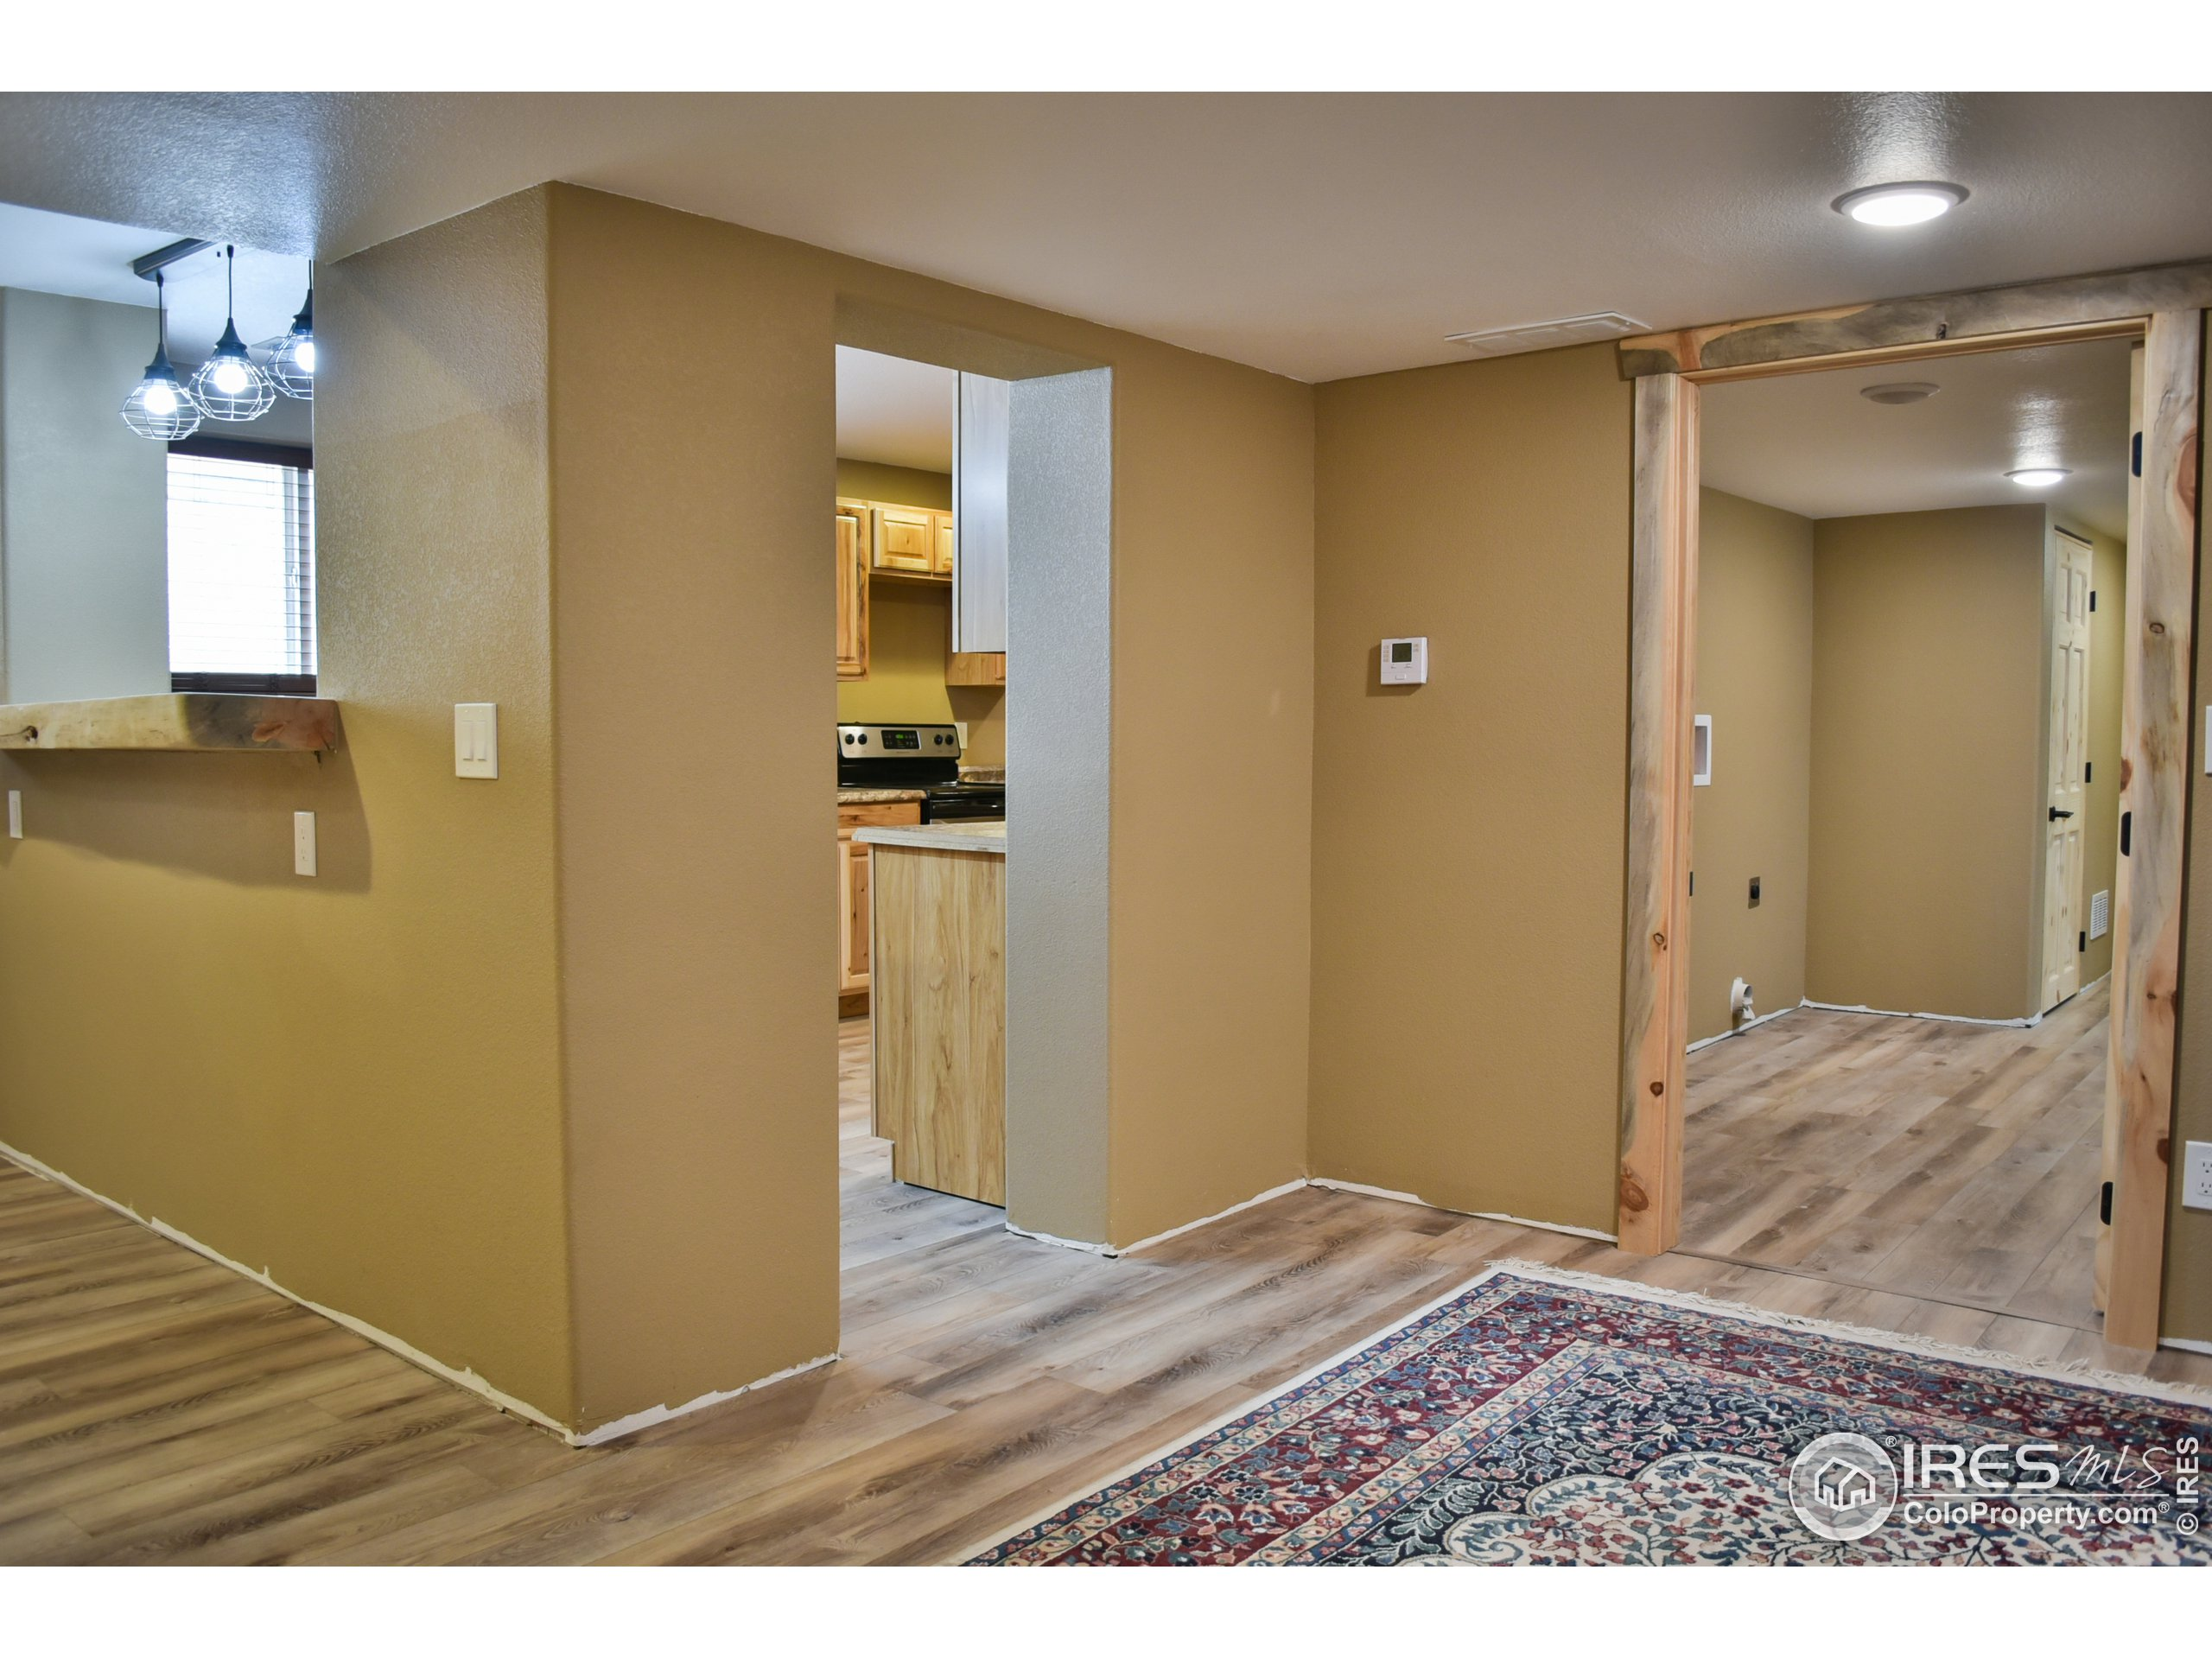 Updated Basement Kitchen with view to dining nook (or foosball - whatever floats your boat!)